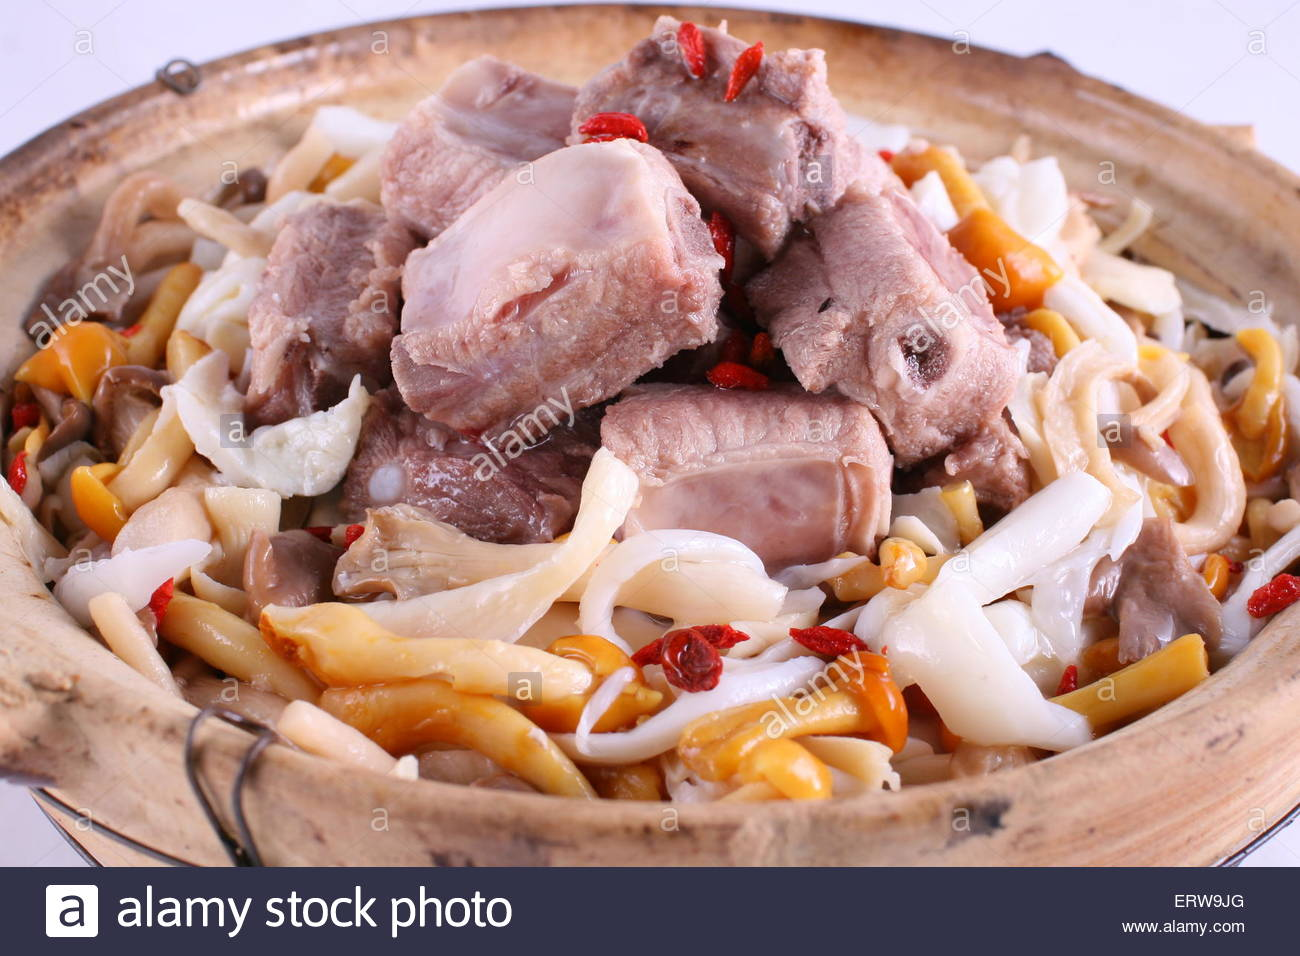 ribs mushroon soup - Stock Image